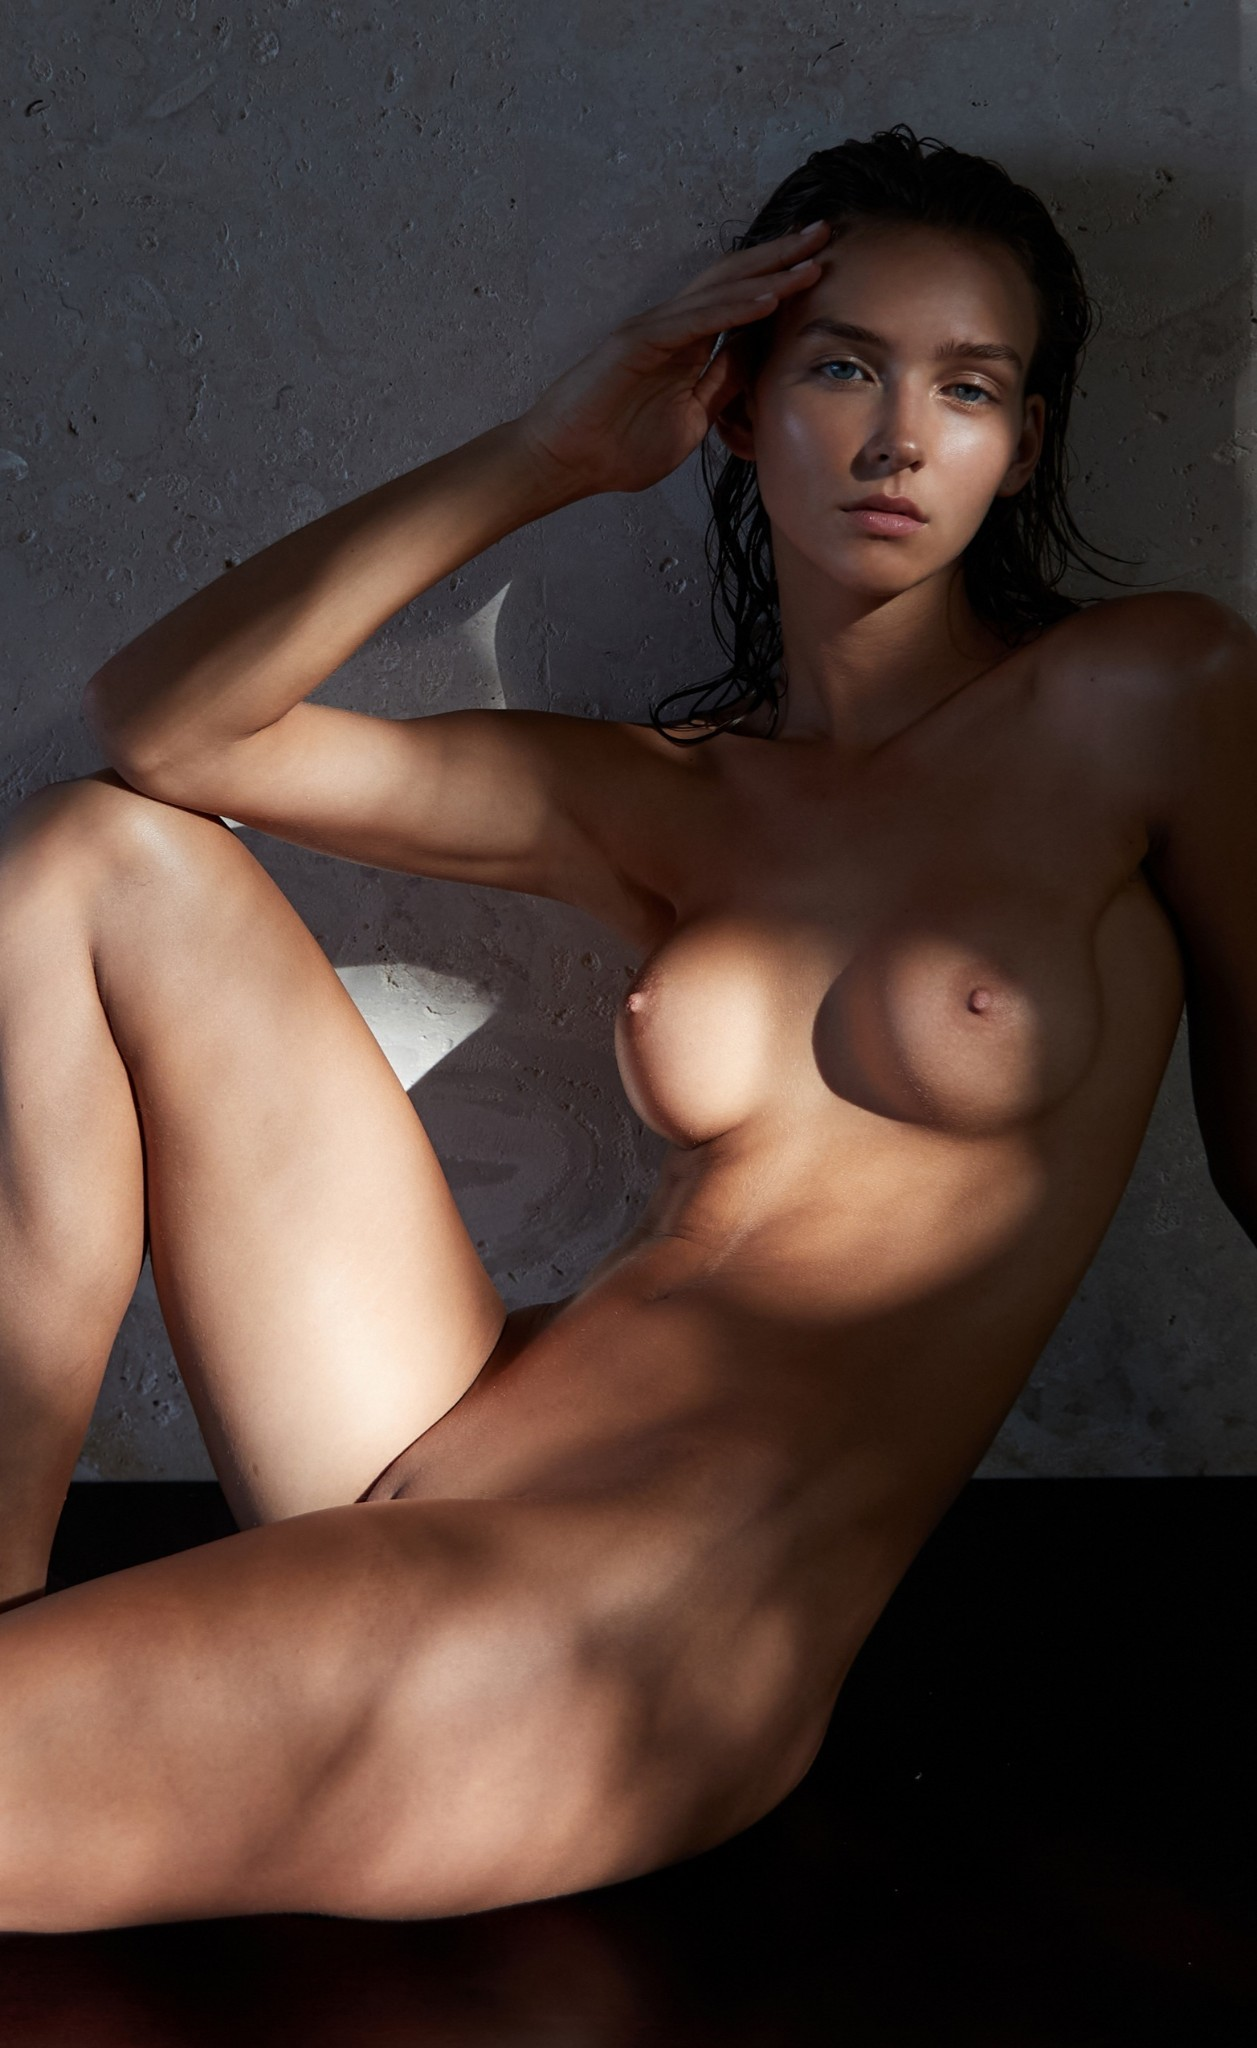 nude cleaning woman naked french beauty #wow  #whatabody  #perfect  #perfectbody  #perfecttits  #suckableNipples  #SmoothPussy  #attitude  #fuckable  #idtapthat